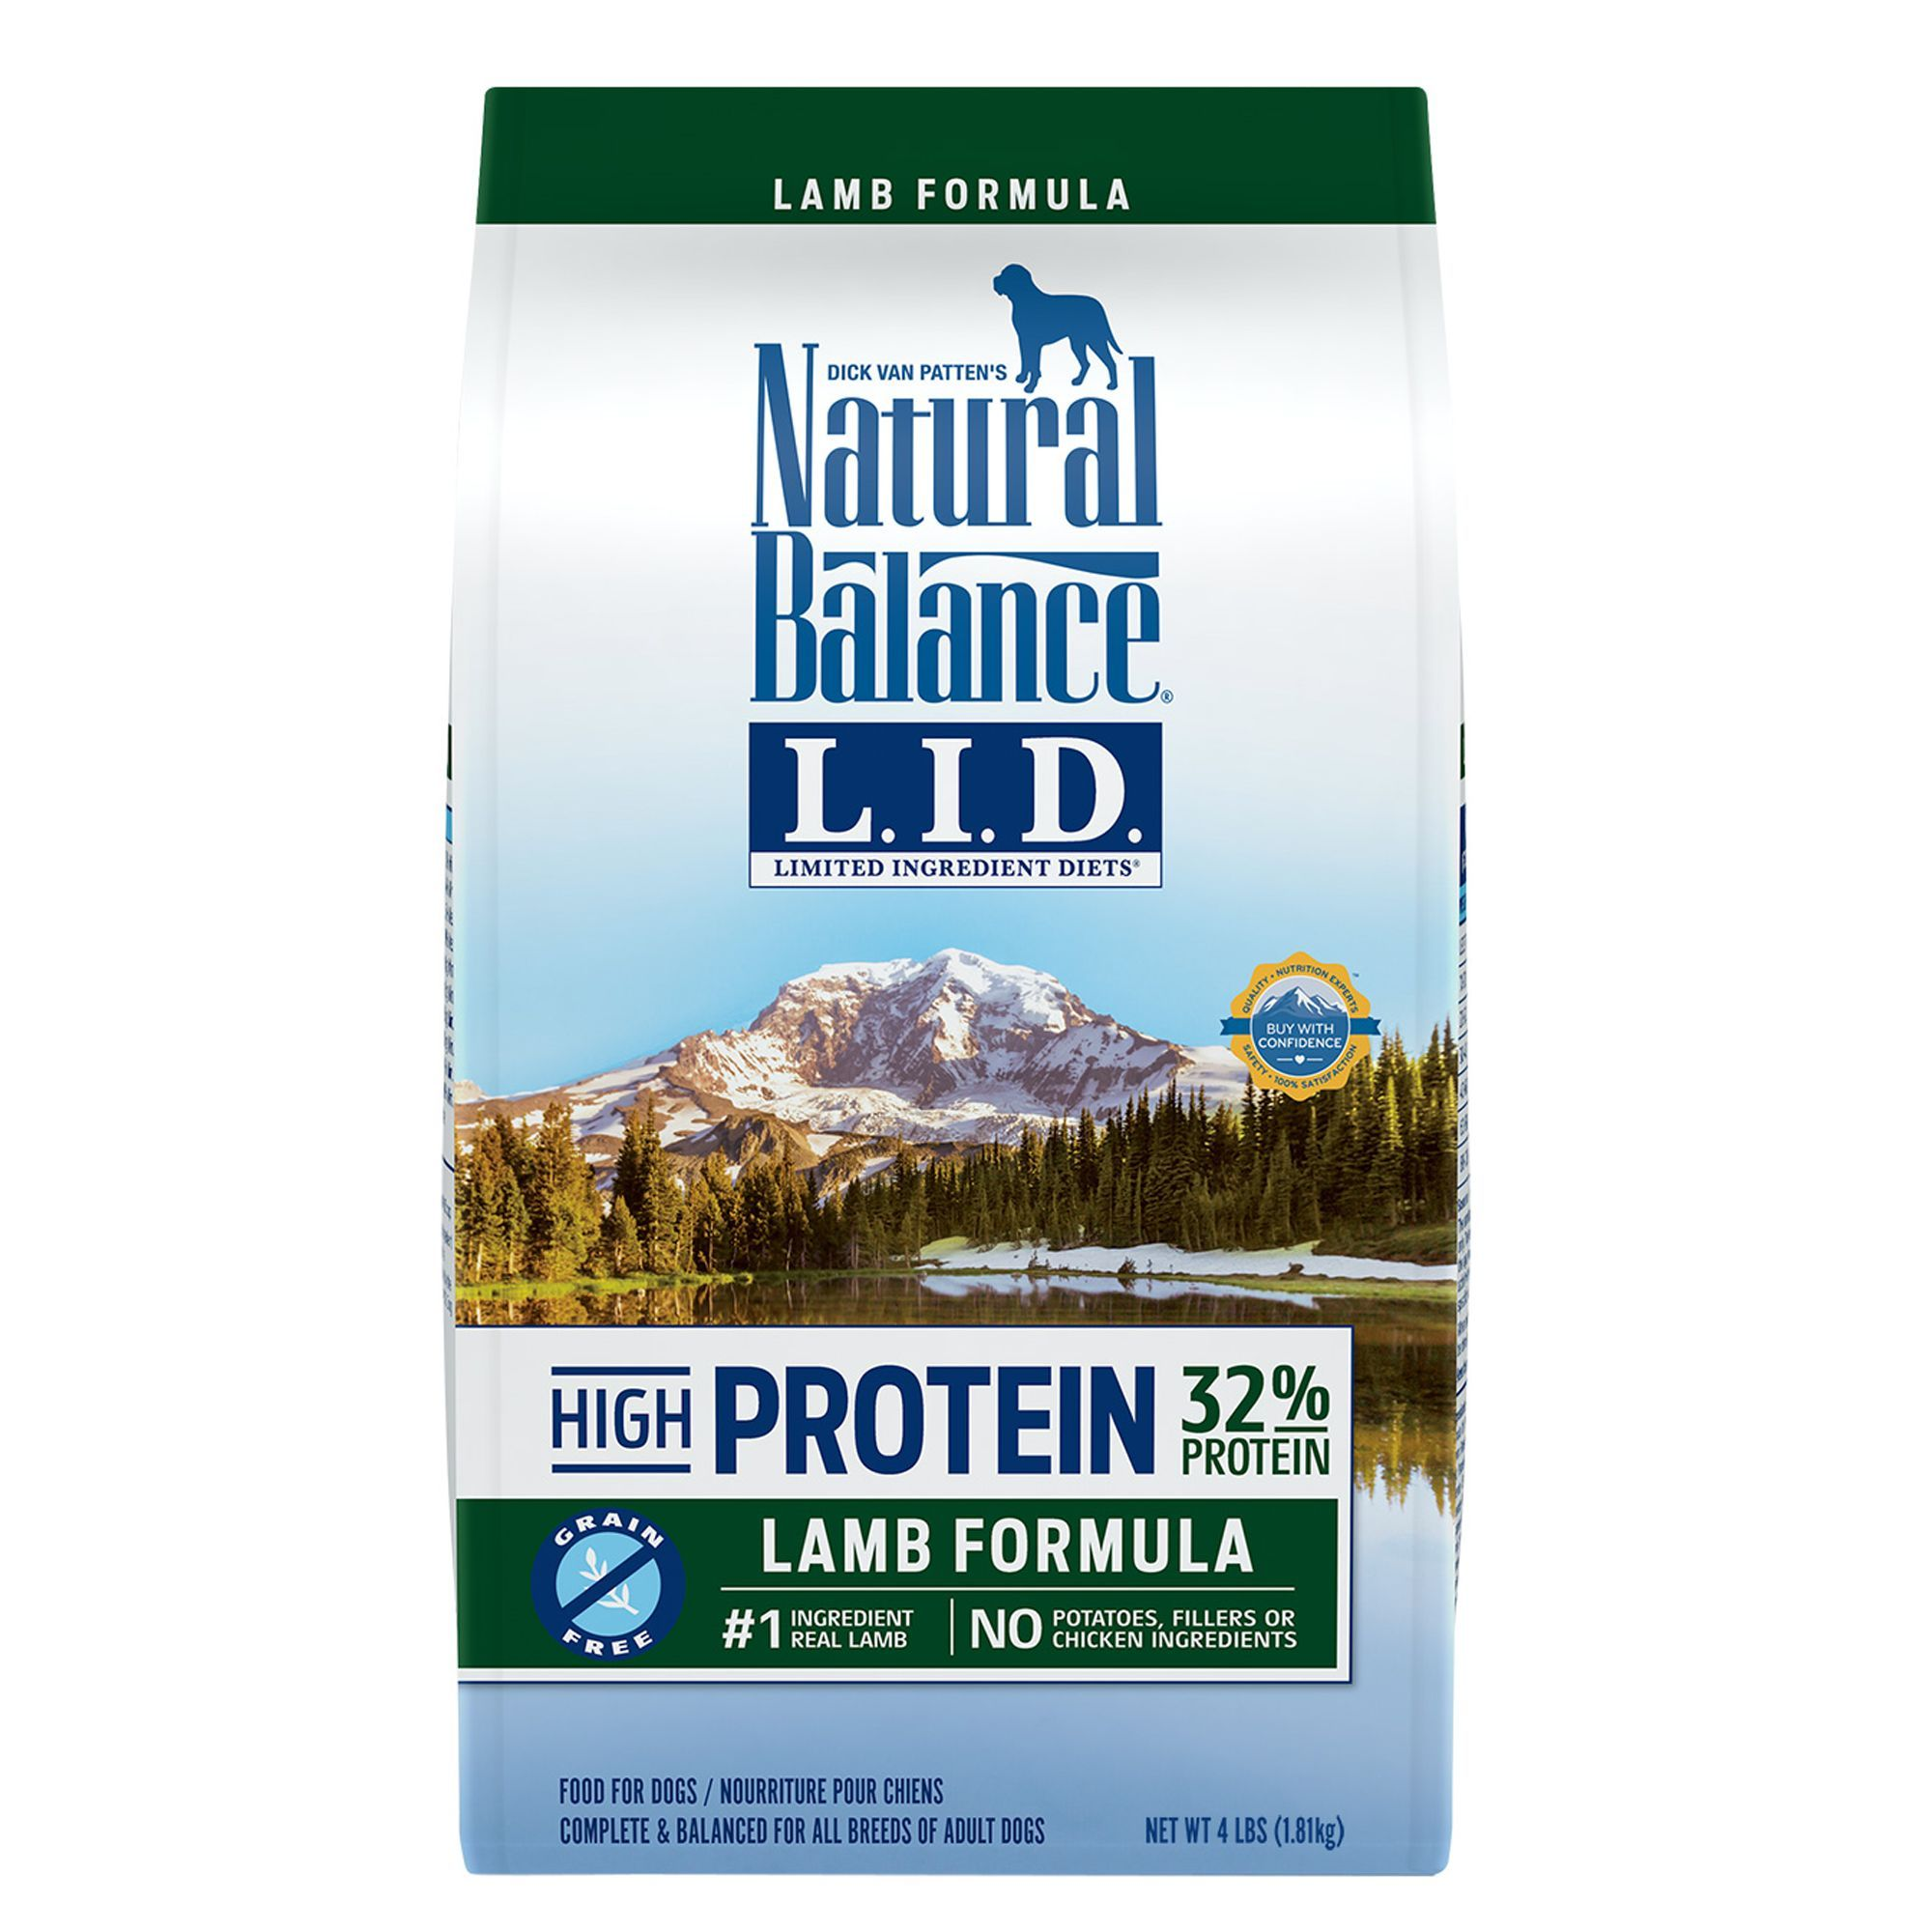 Natural Balance Limited Ingredient Diets High Protein Adult Dog